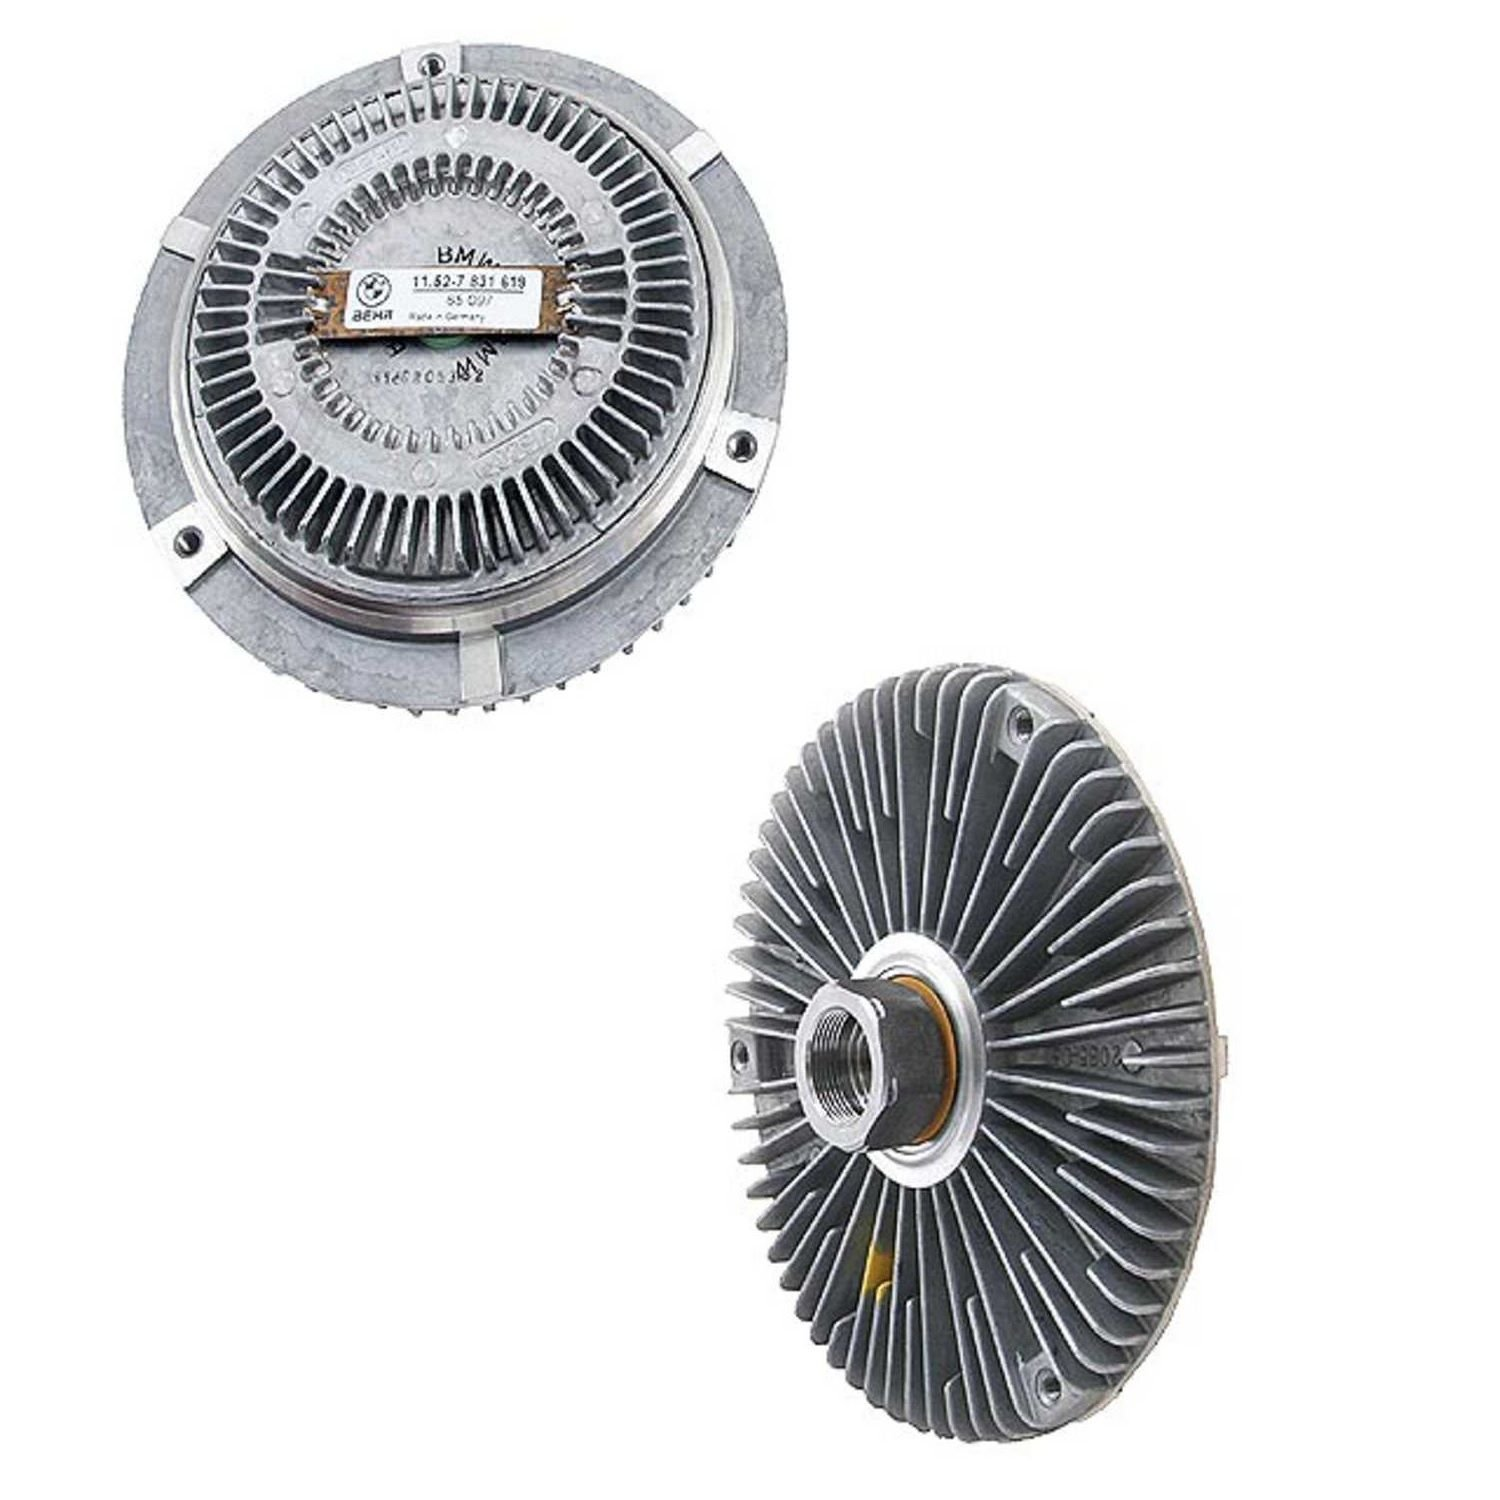 BMW Fan Clutch Brand New OEM BEHR